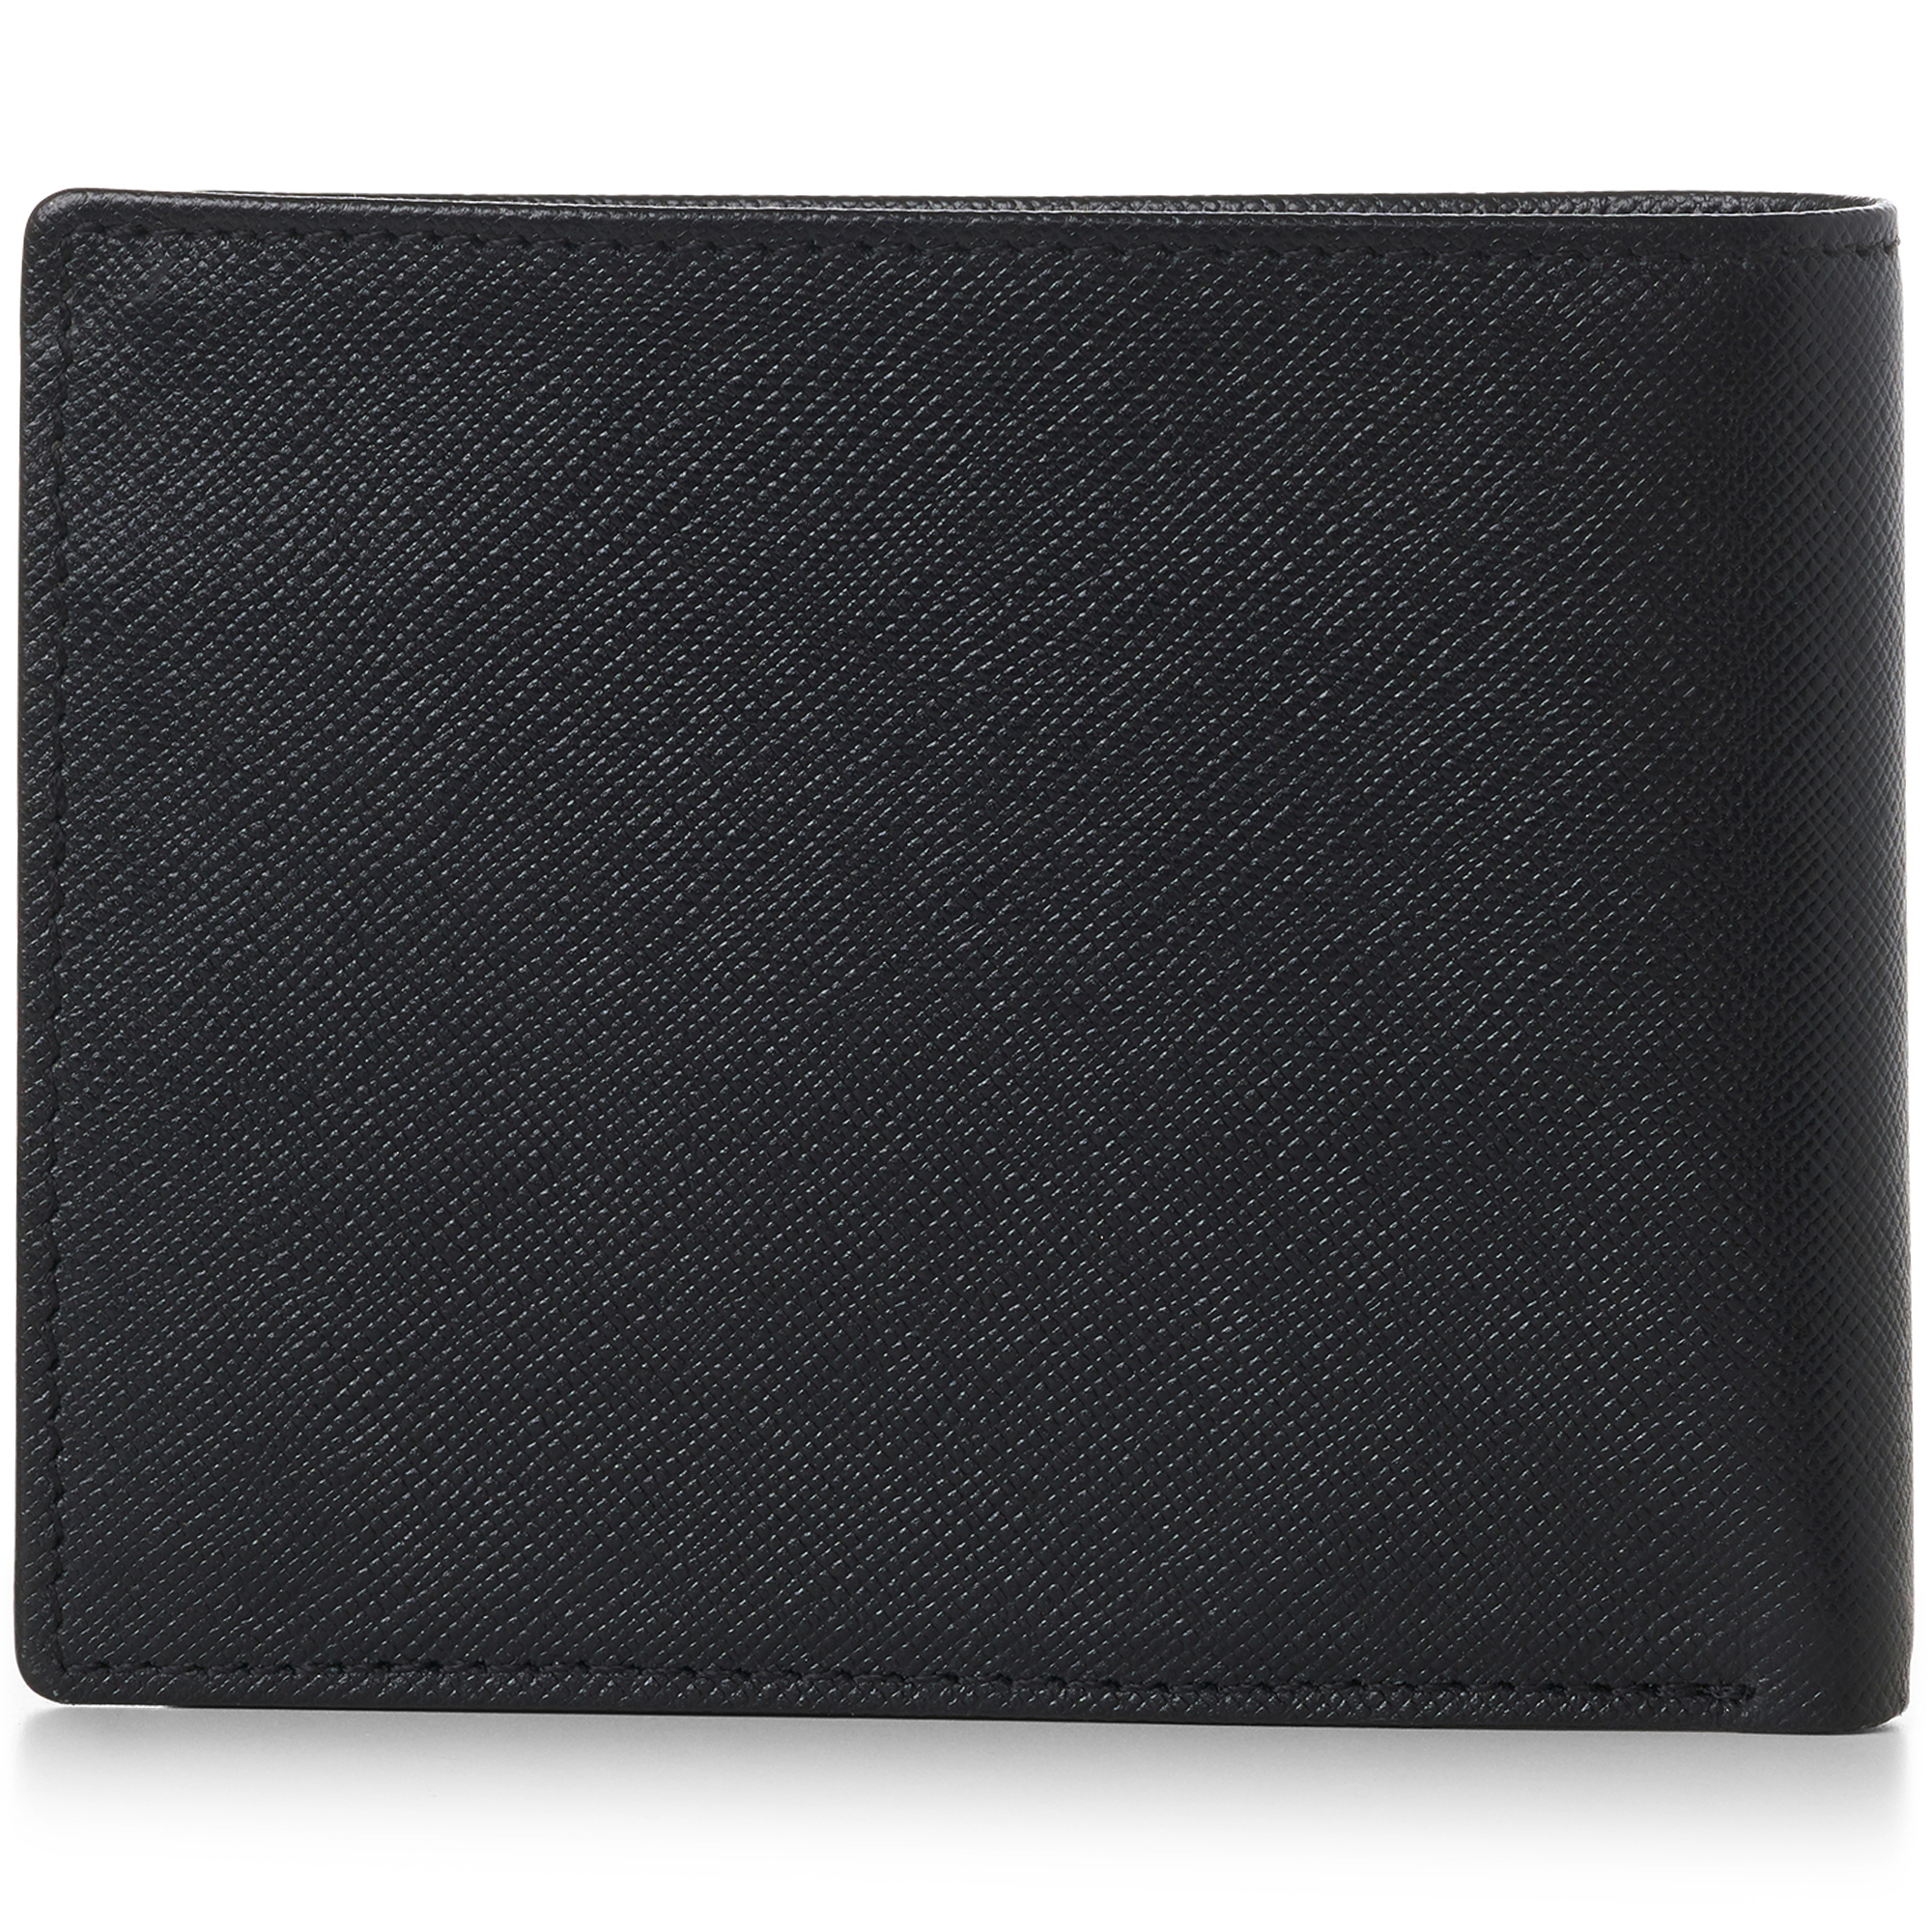 miniature 46 - Alpine-Swiss-RFID-Mens-Wallet-Deluxe-Capacity-Passcase-Bifold-Two-Bill-Sections